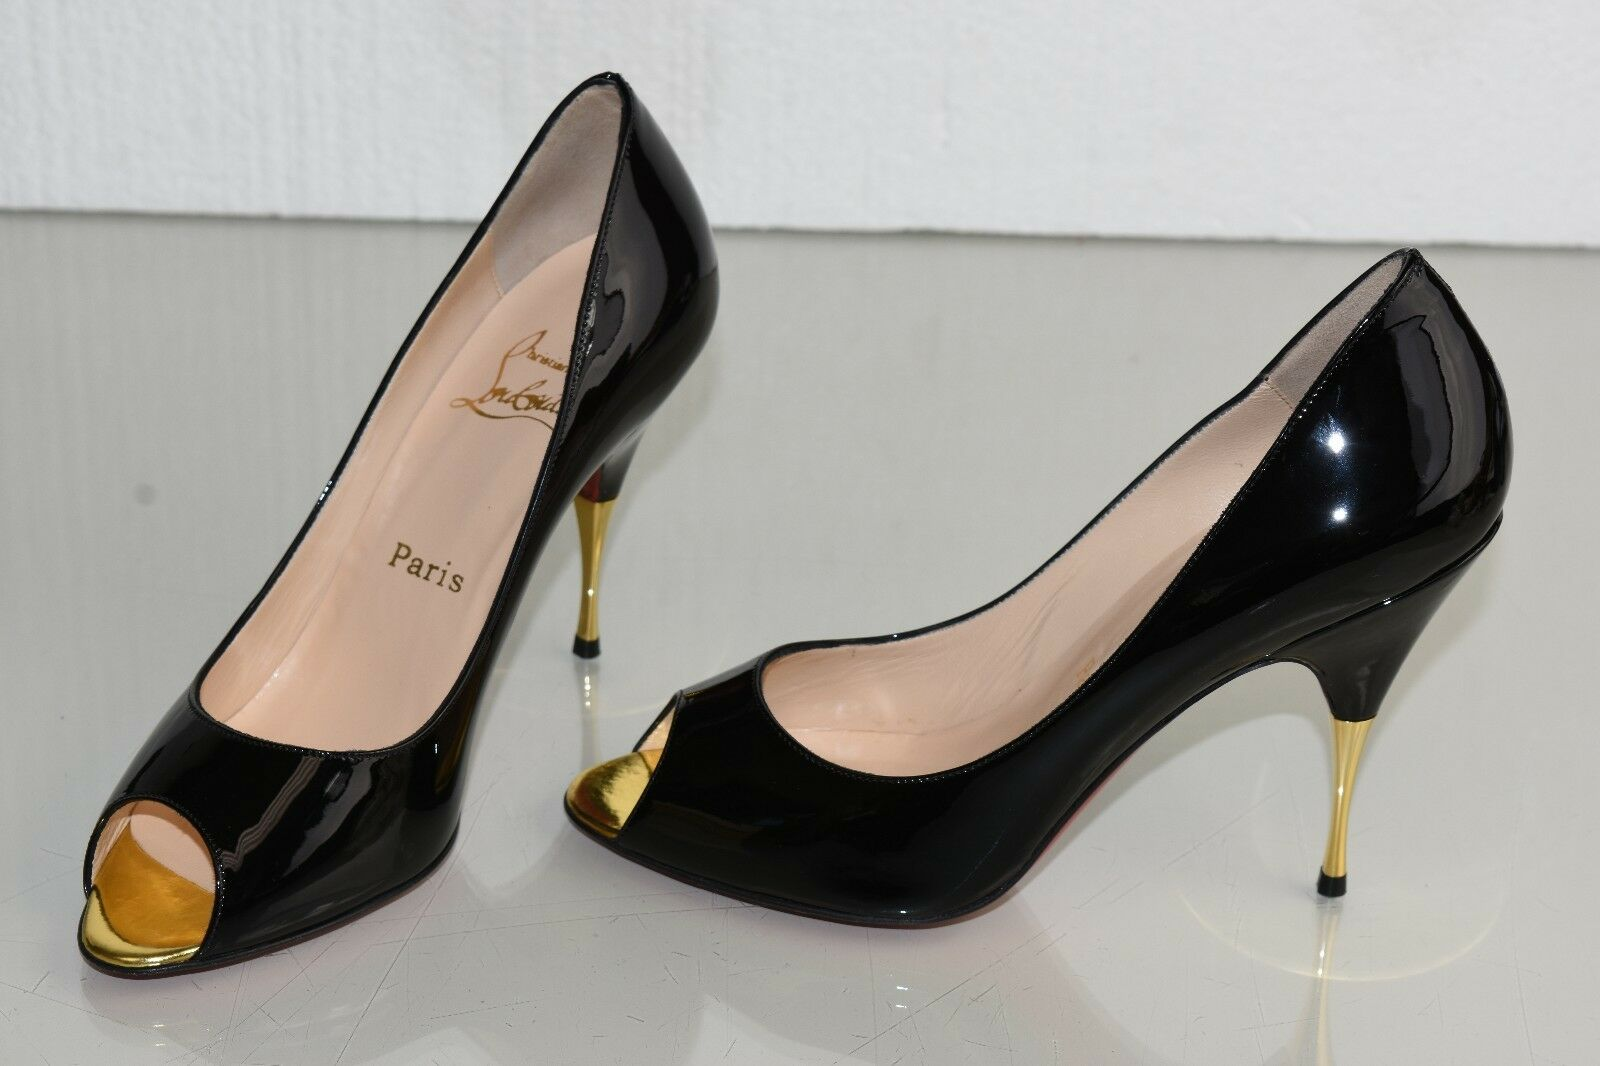 NEW Christian Louboutin YOYOSPINA 100 Black Patent Leather Pumps Shoes 38